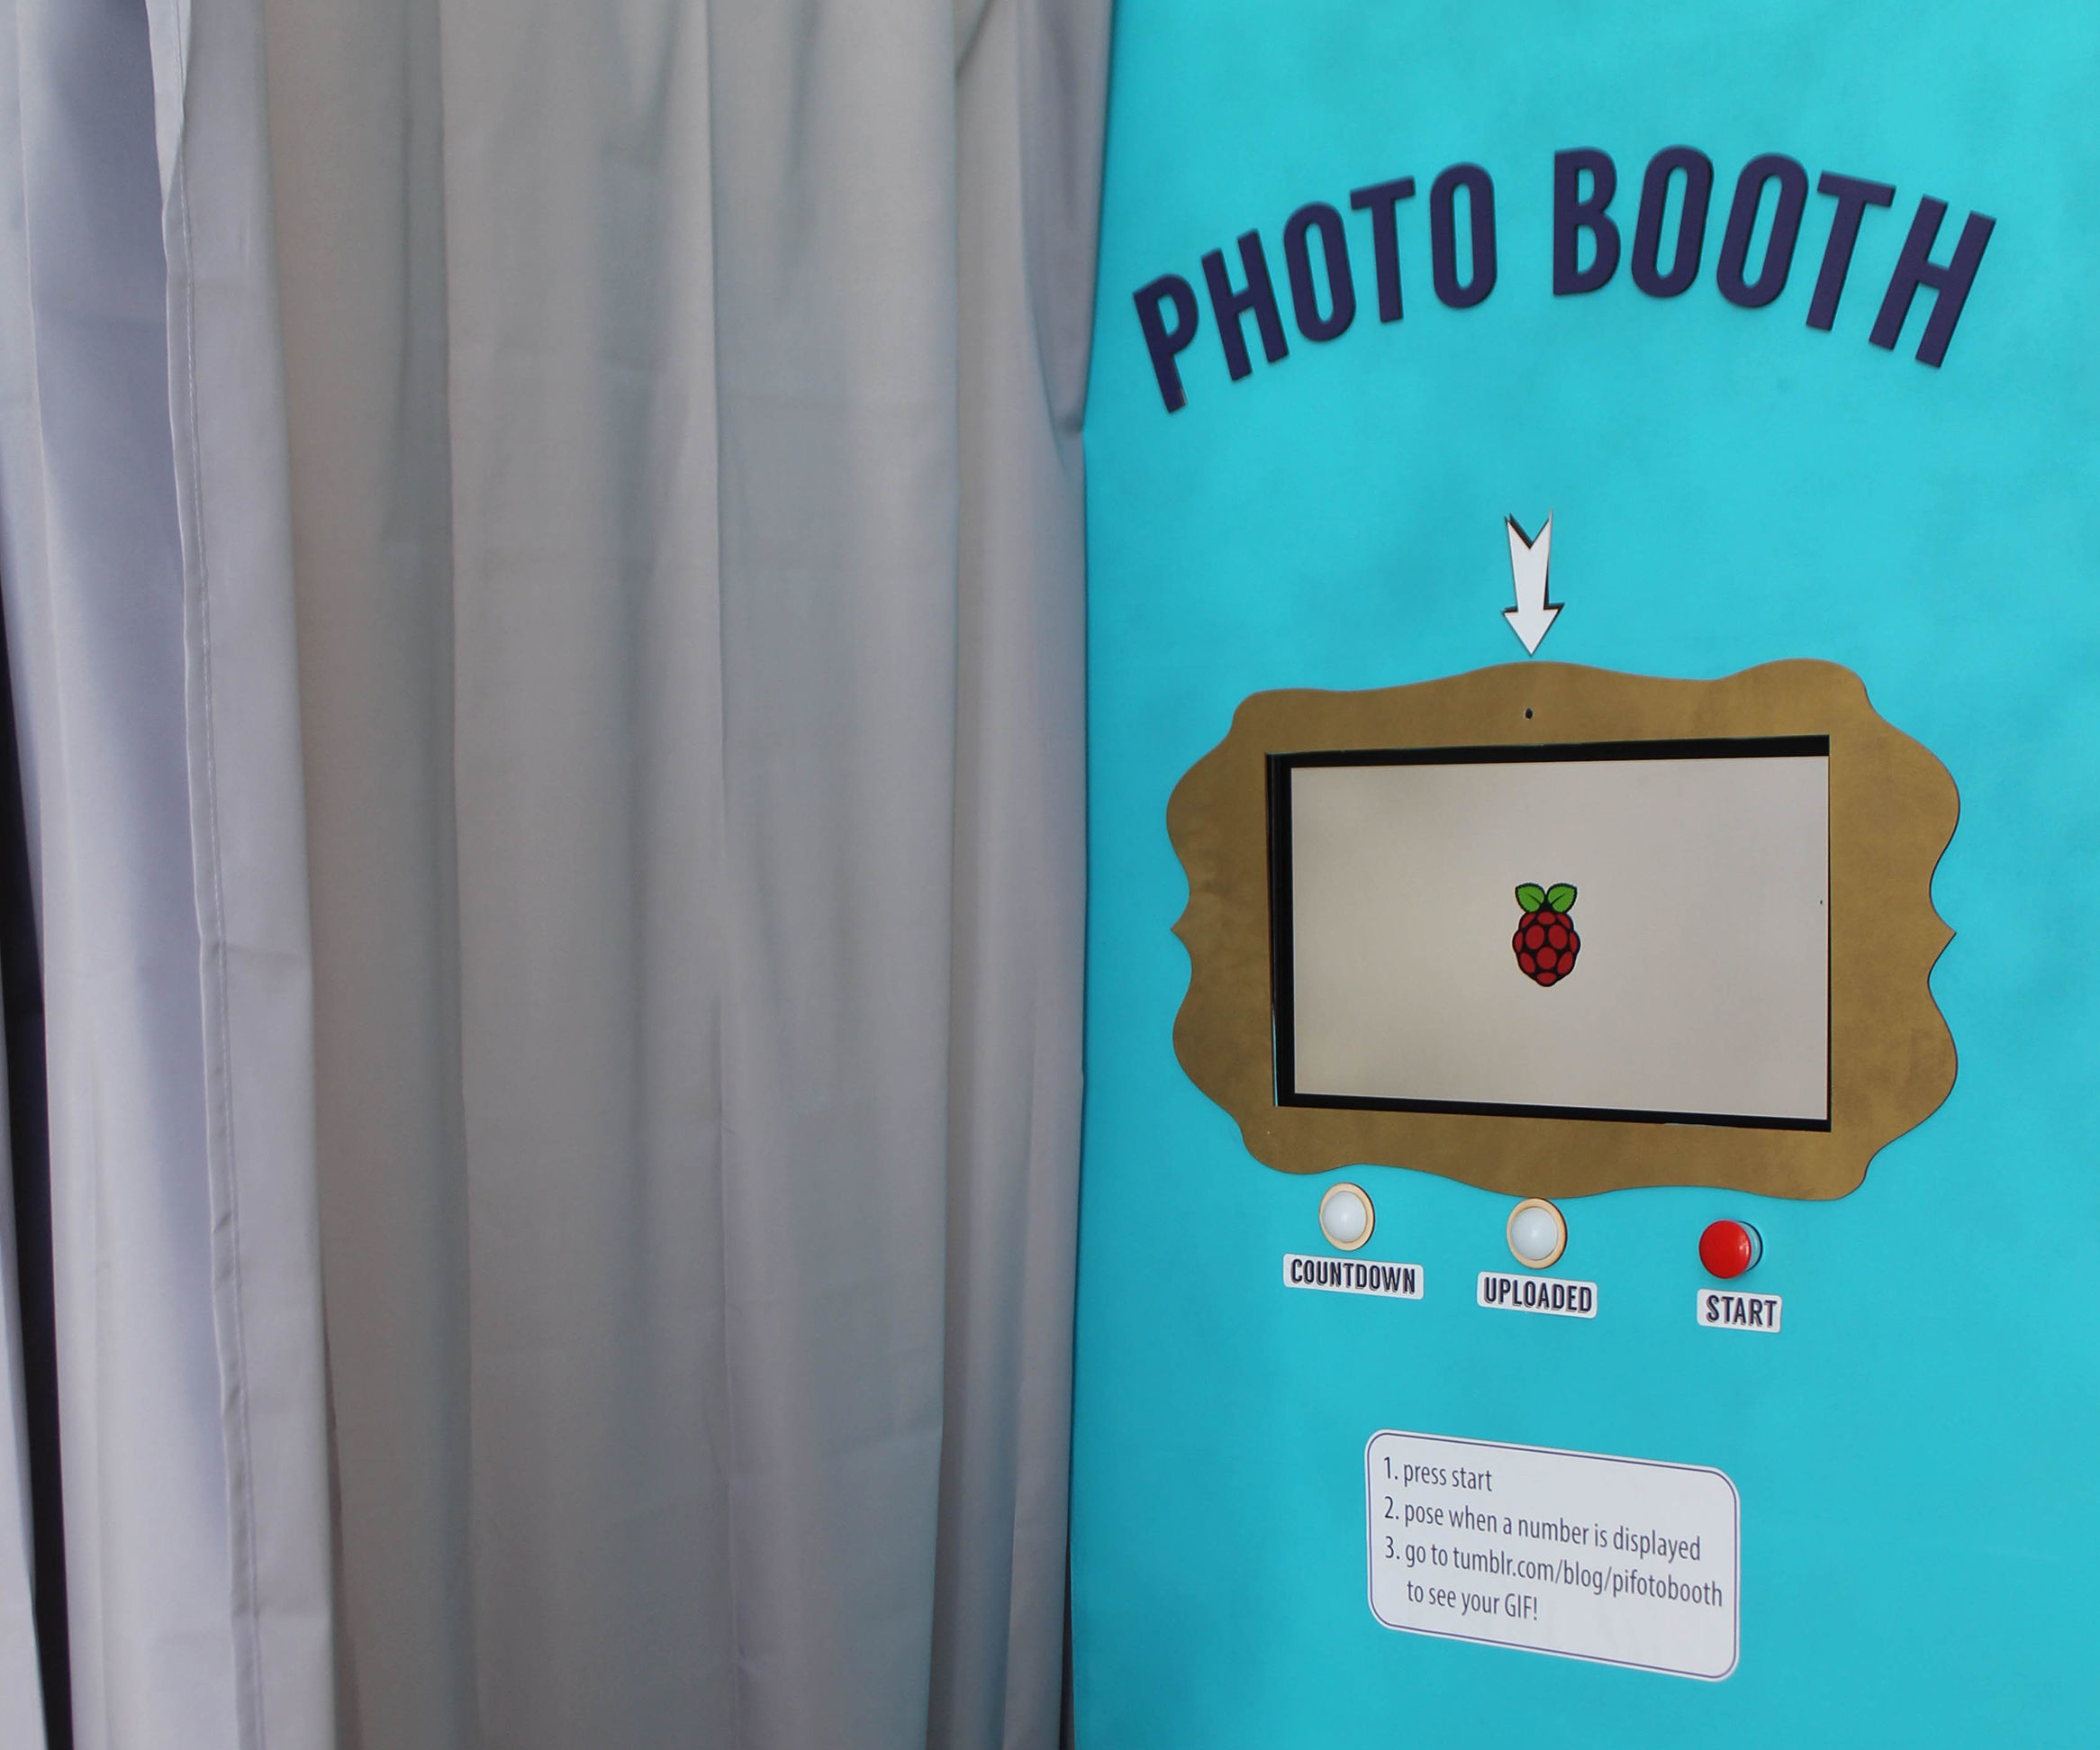 Build a Photo Booth!